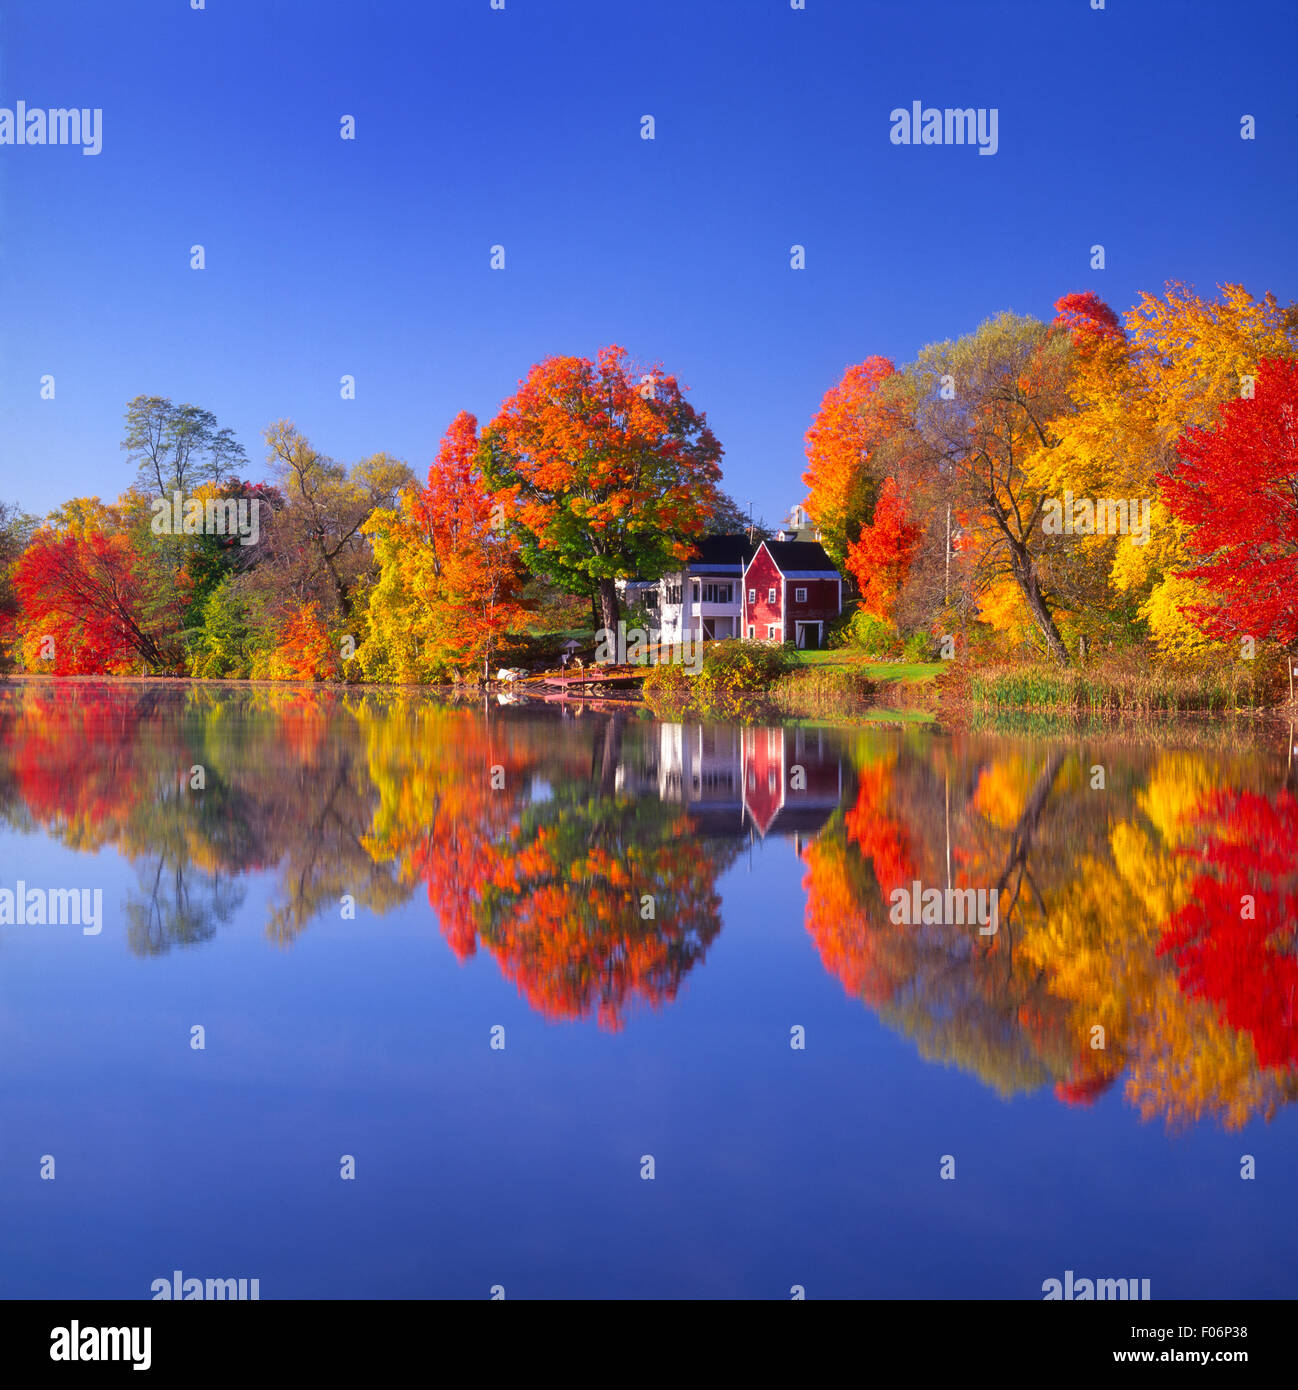 Highland Lake in East Andover, NH USA - Stock Image